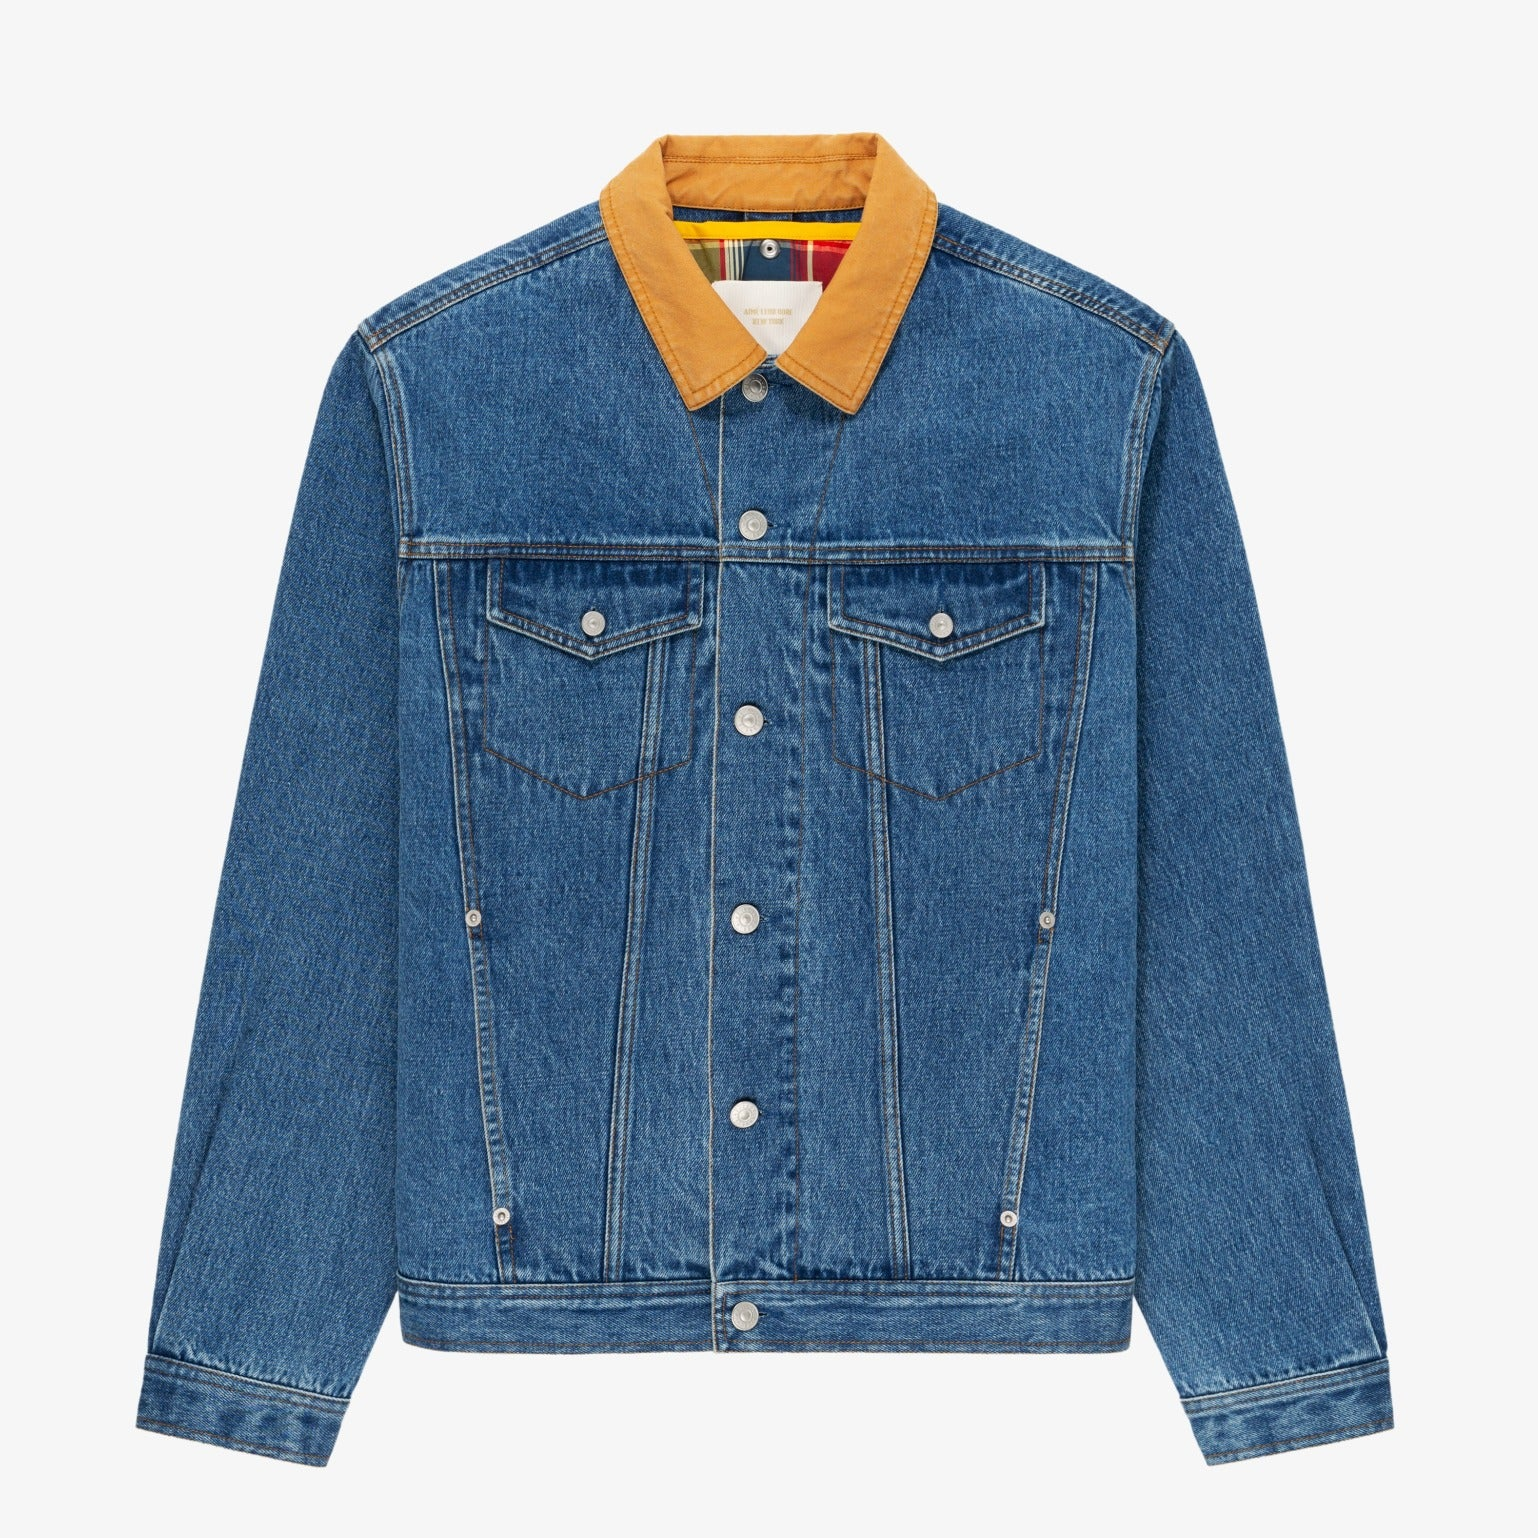 Denim 3-in-1 Jacket